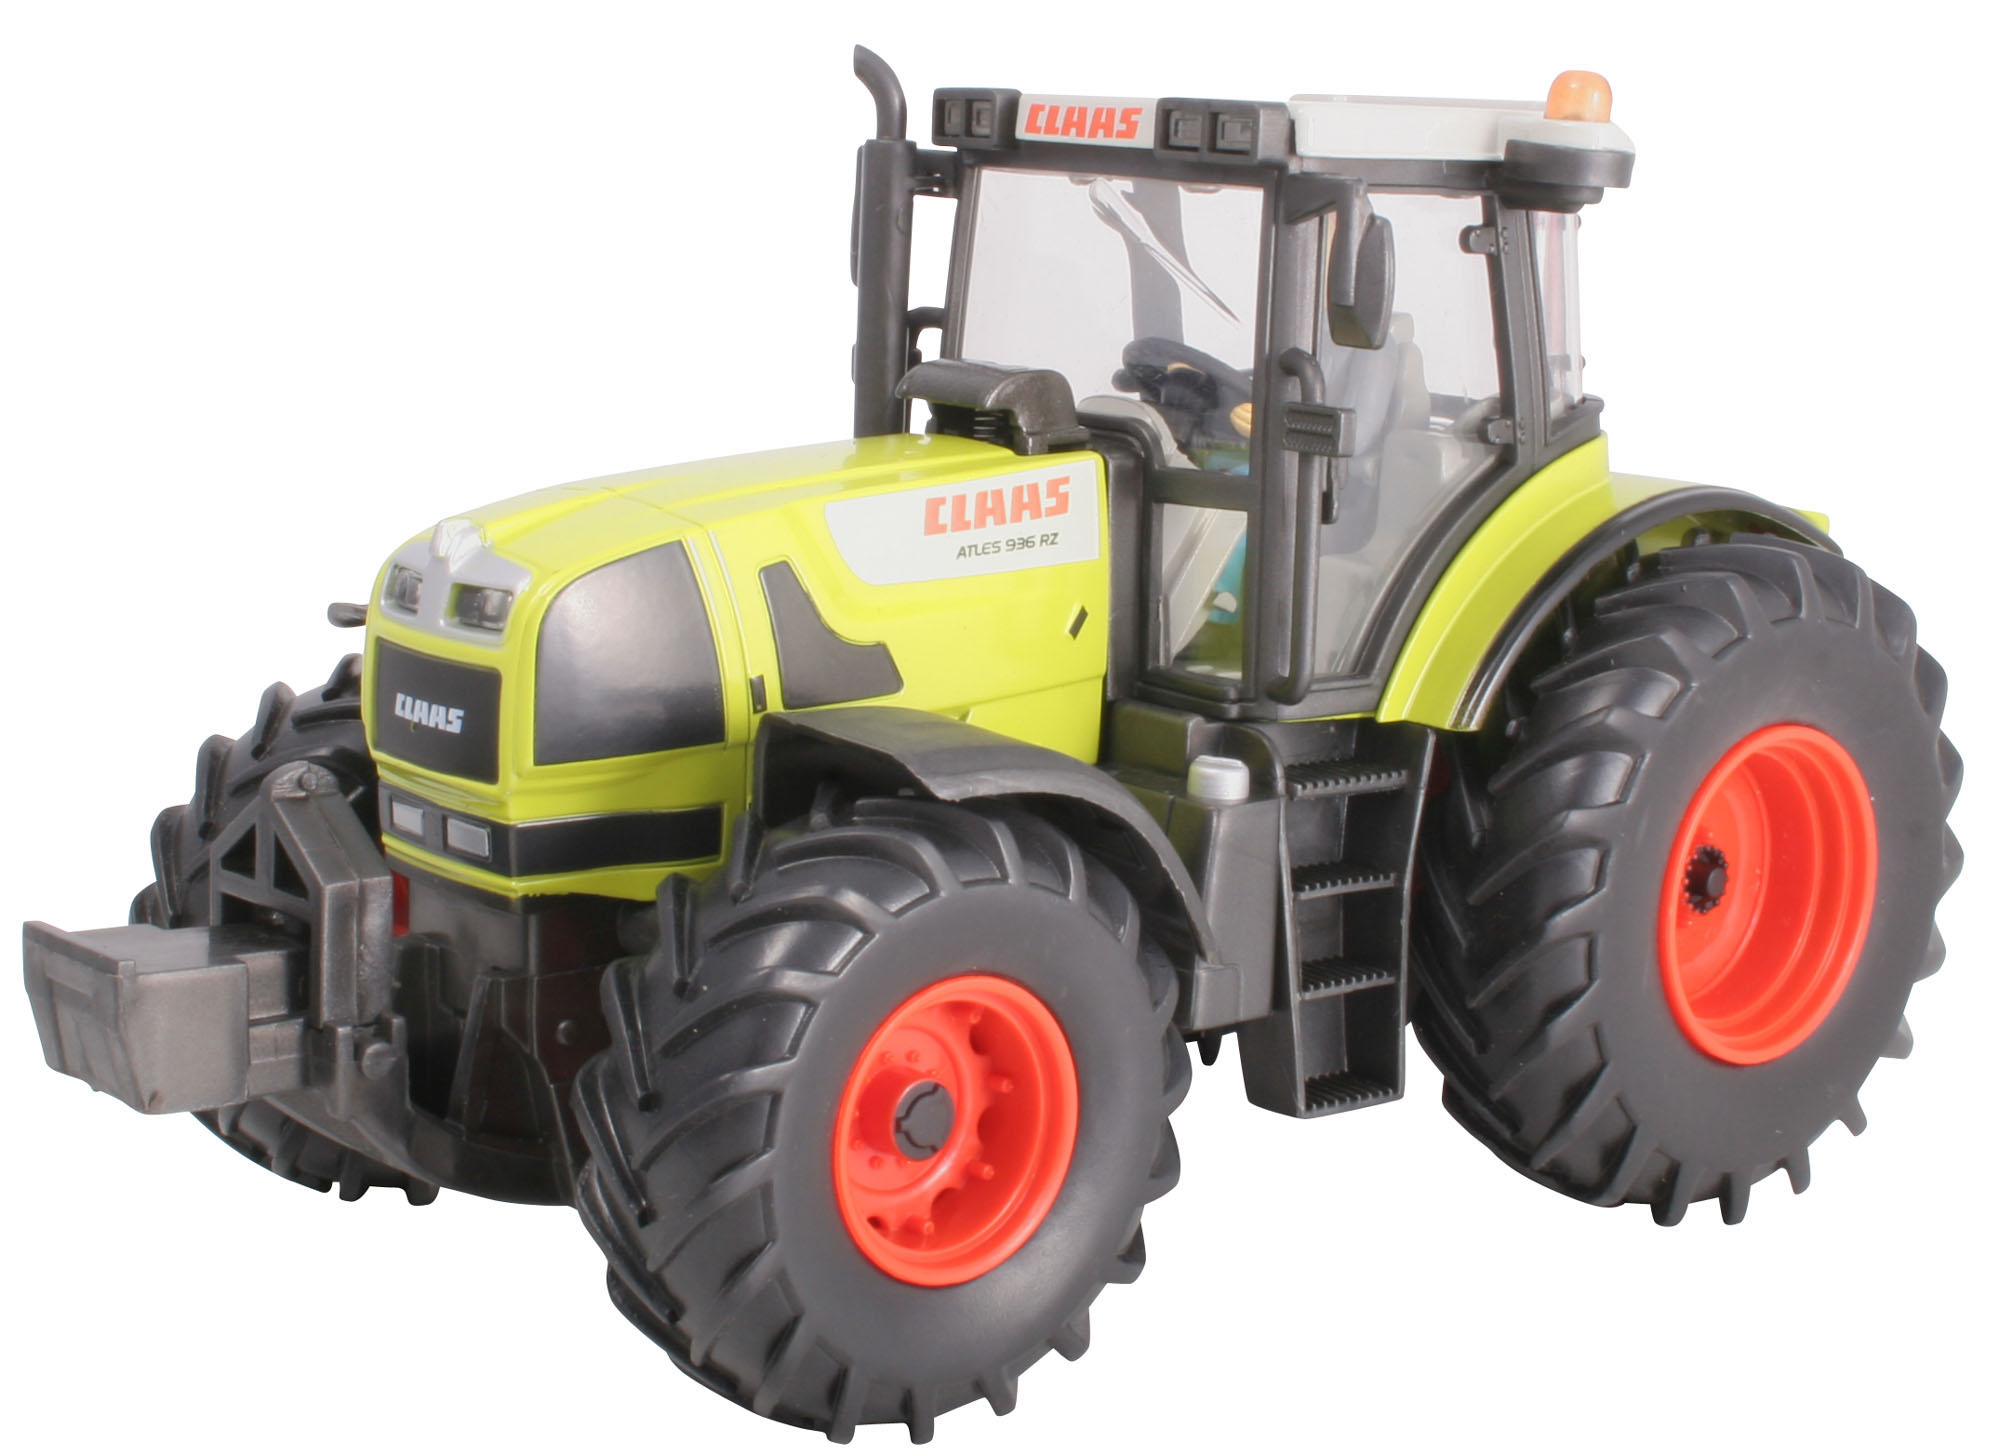 tracteur claas friction son de claas minitp le sp cialiste du jouet miniature agricole. Black Bedroom Furniture Sets. Home Design Ideas